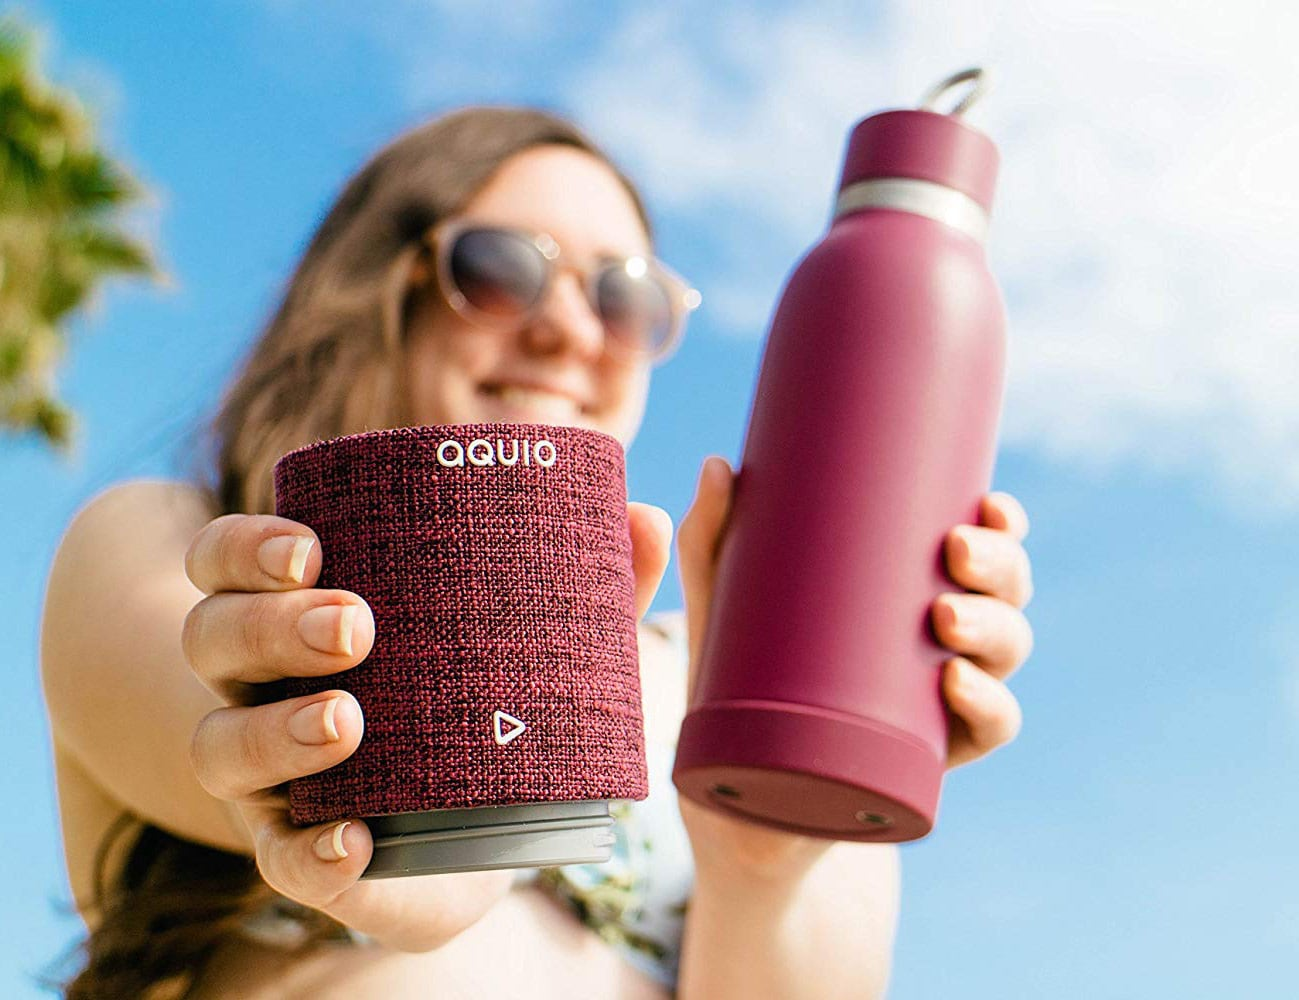 Aquio Water Bottle and Speaker hydrates and plays music